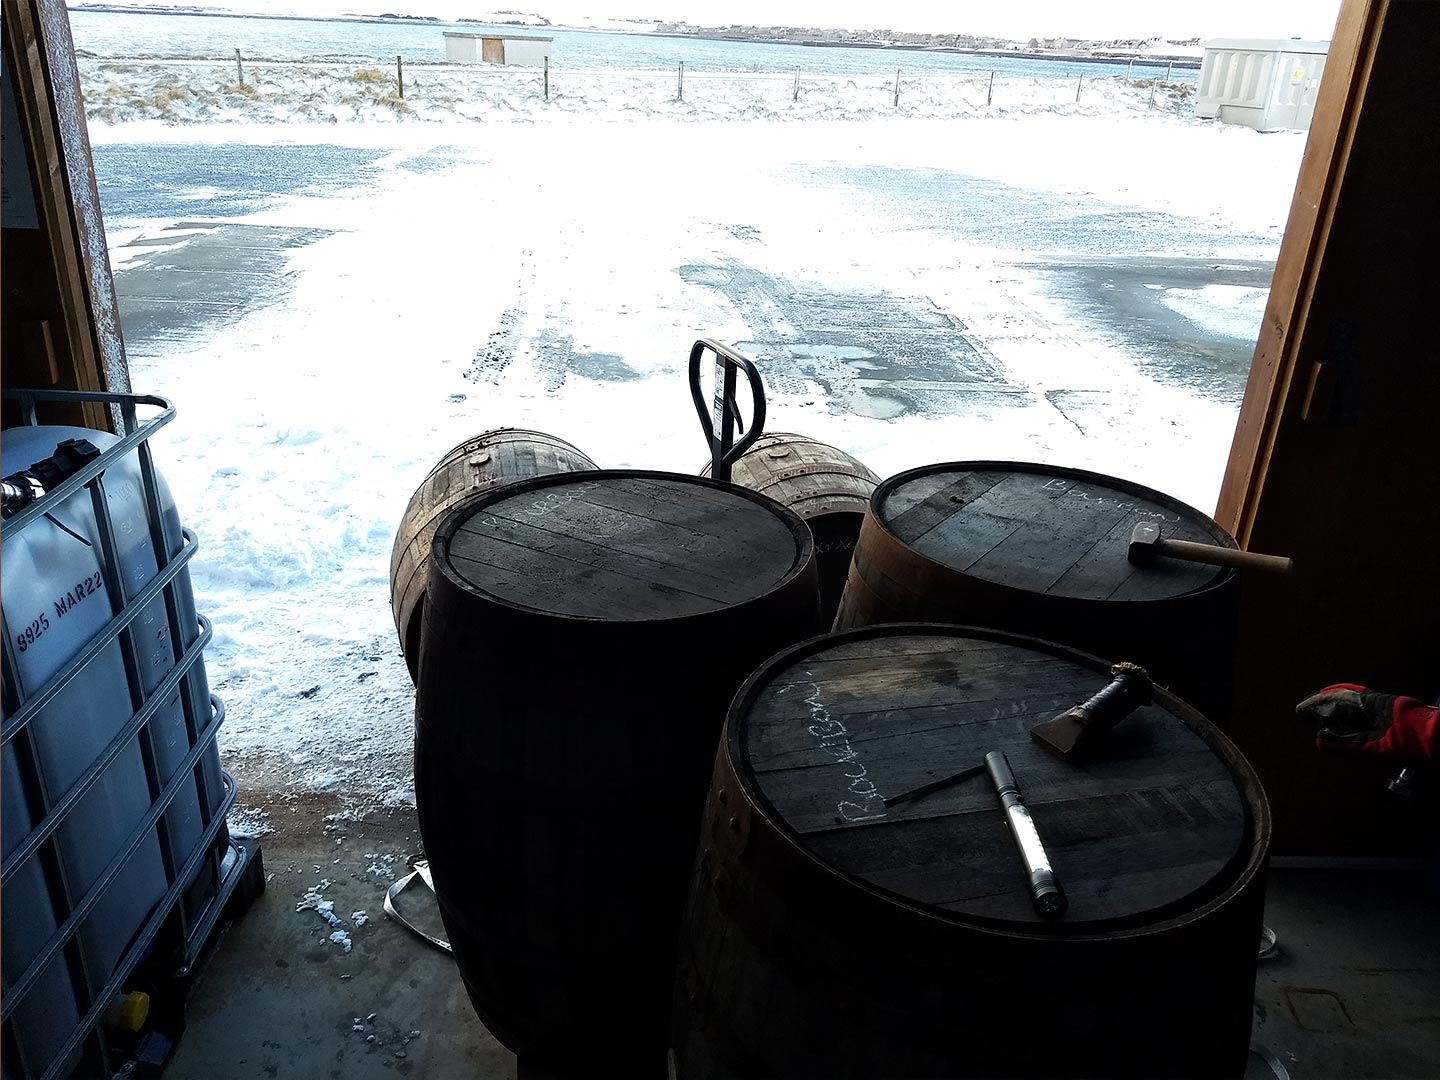 barrels and snow